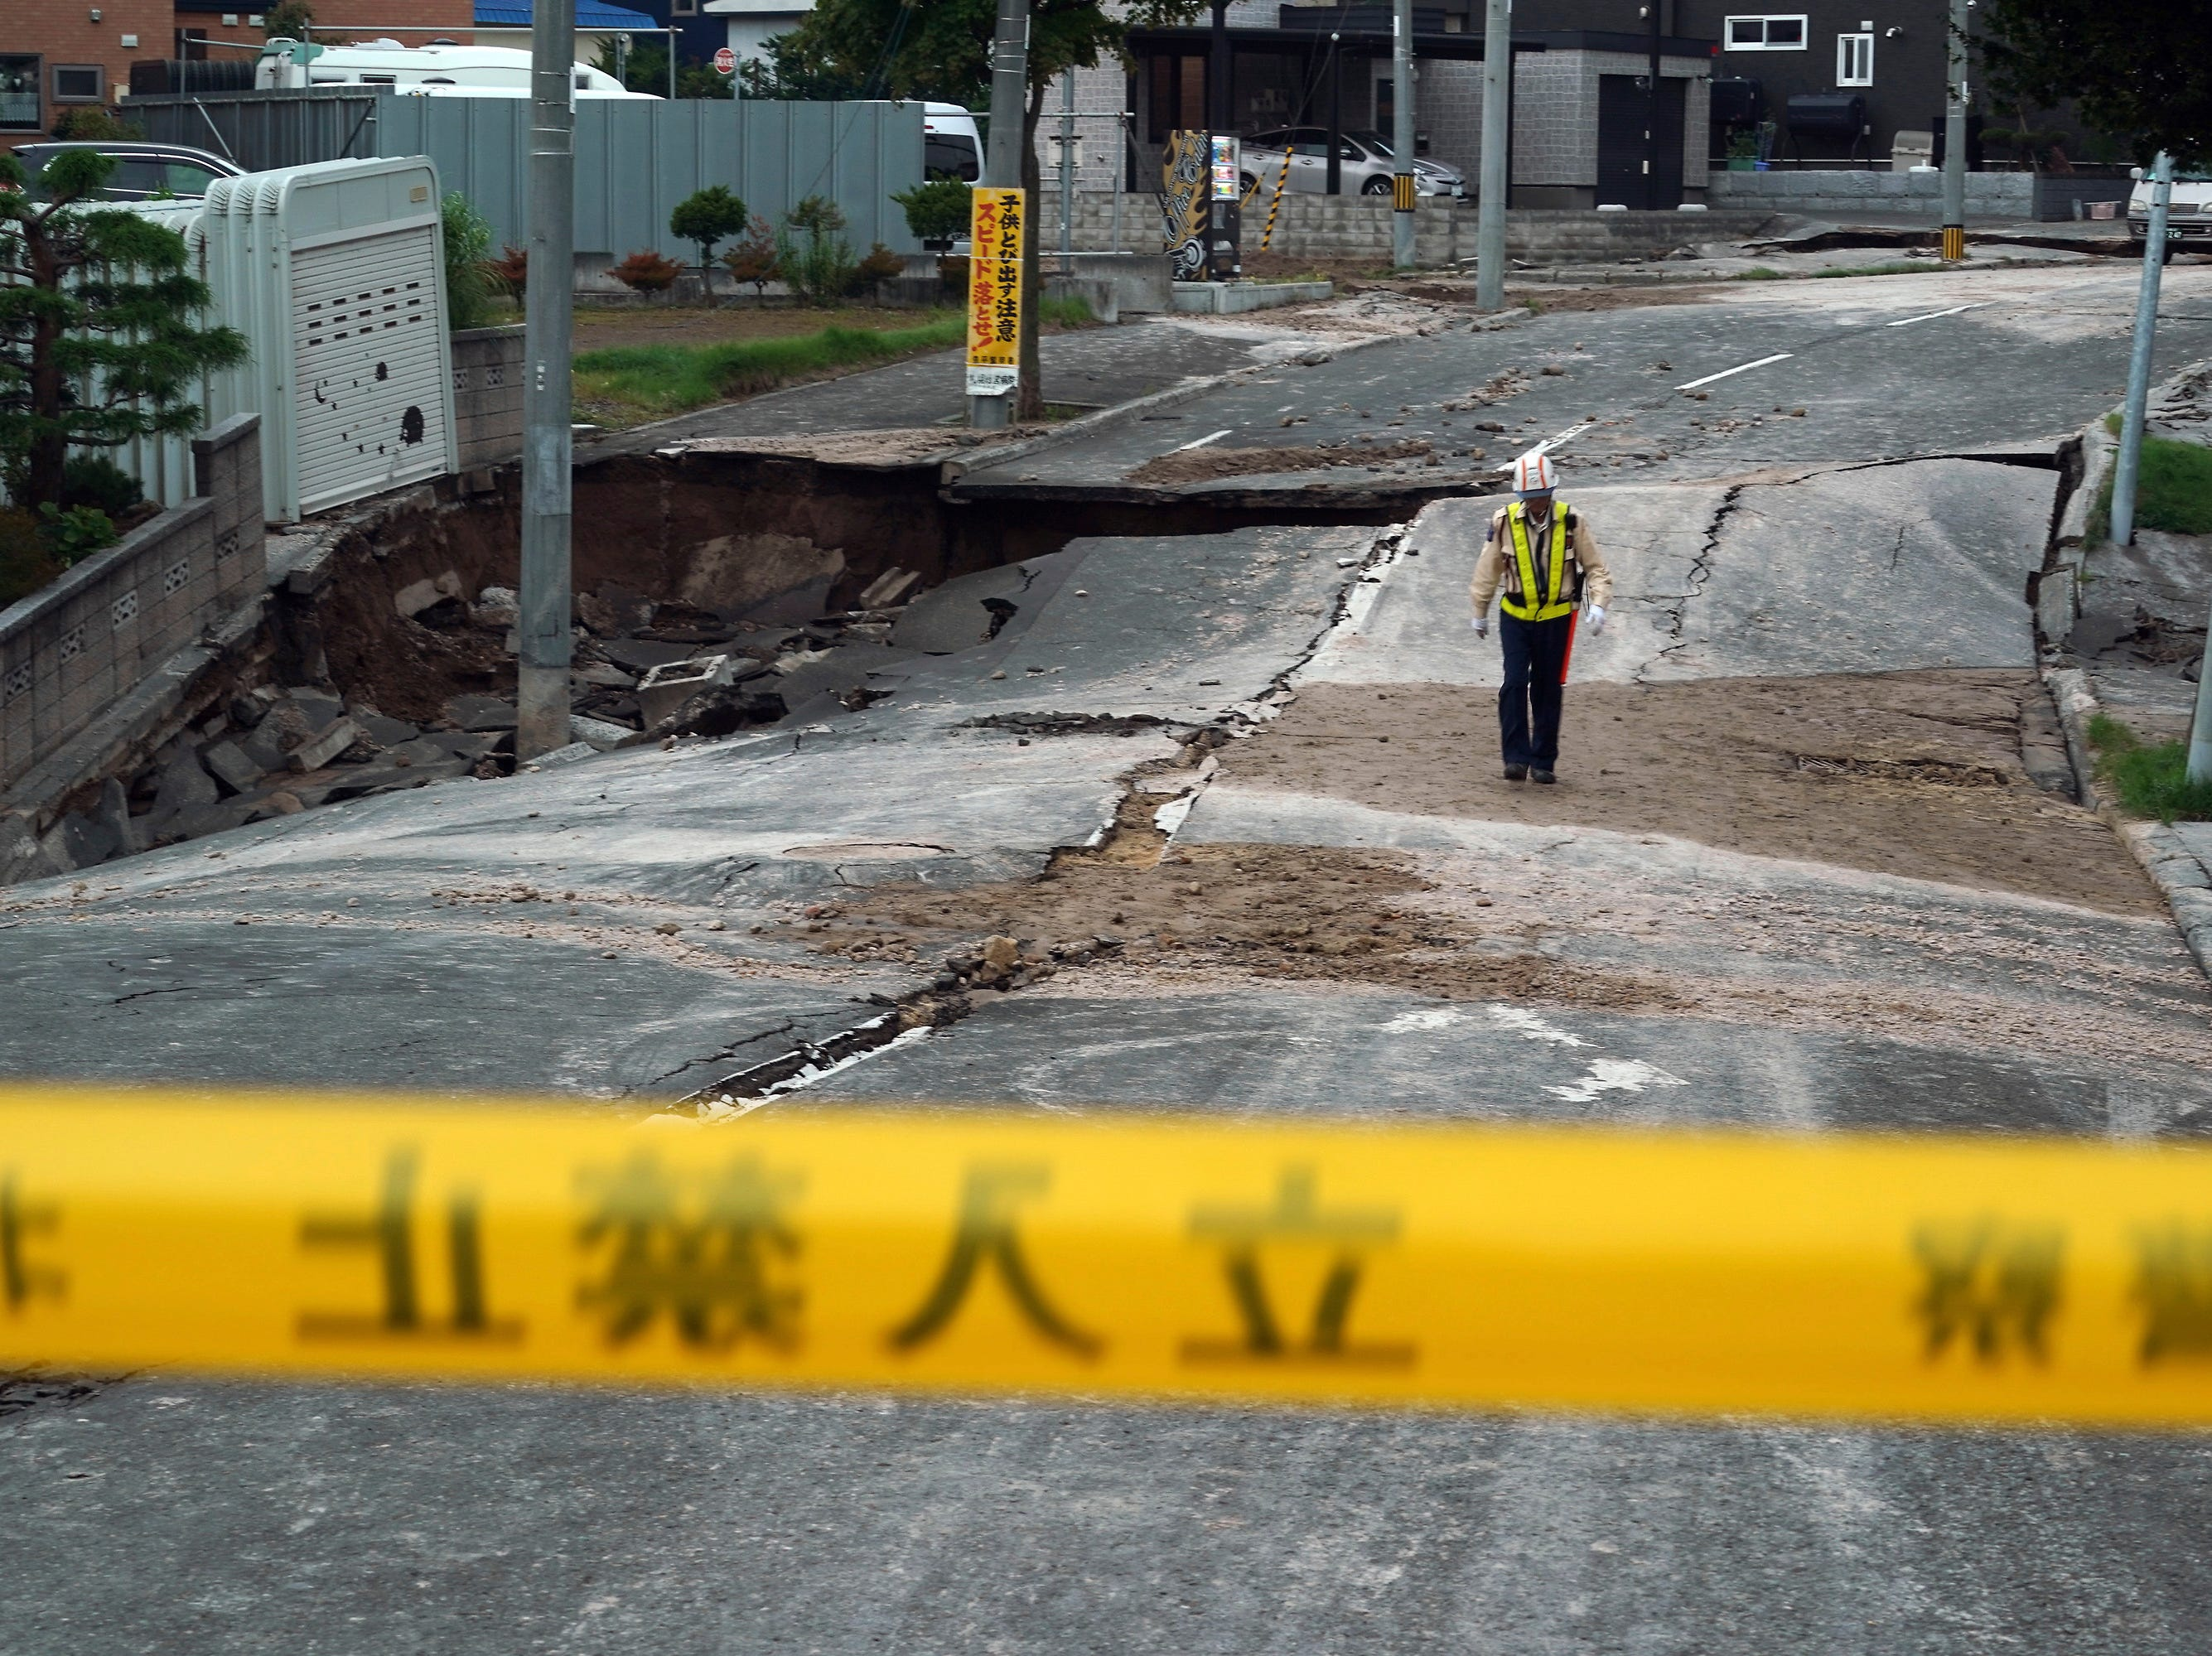 A security guard walks on an earthquake-damaged street in Kiyota, outskirts of Sapporo city, Hokkaido, northern Japan, Friday, Sept. 7, 2018.